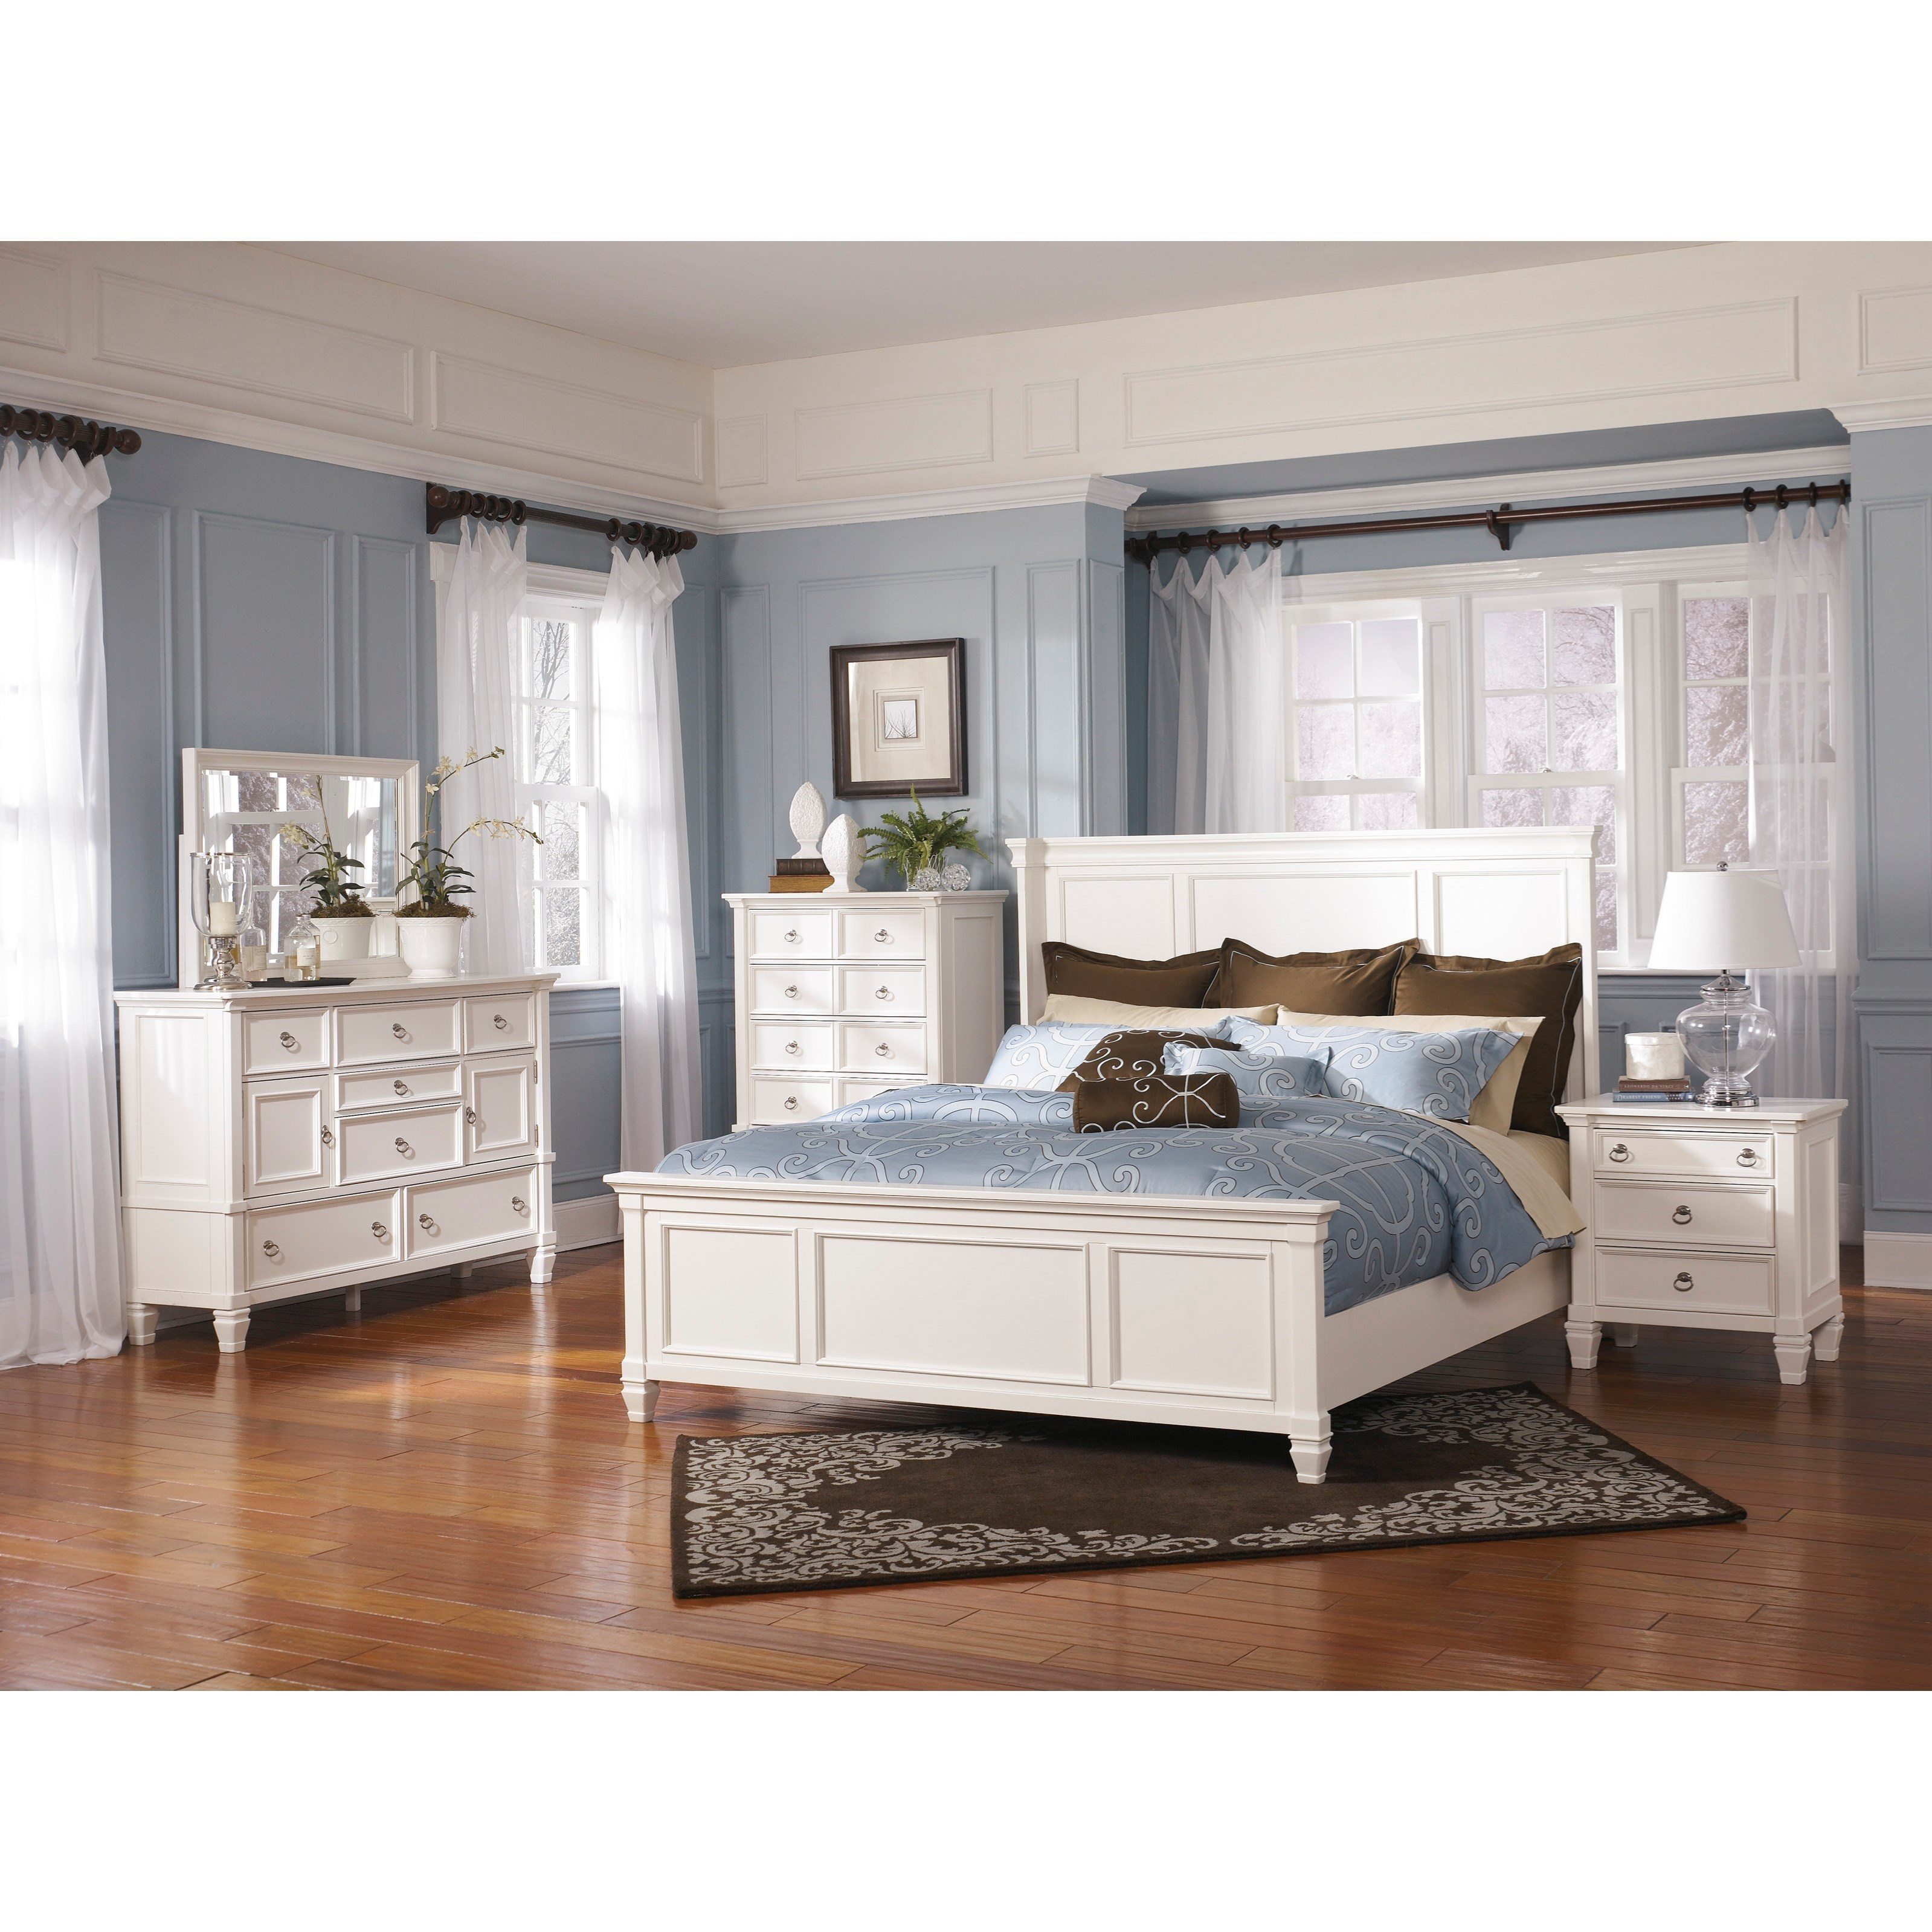 Prentice California Bedroom Group by Millennium at Northeast Factory Direct